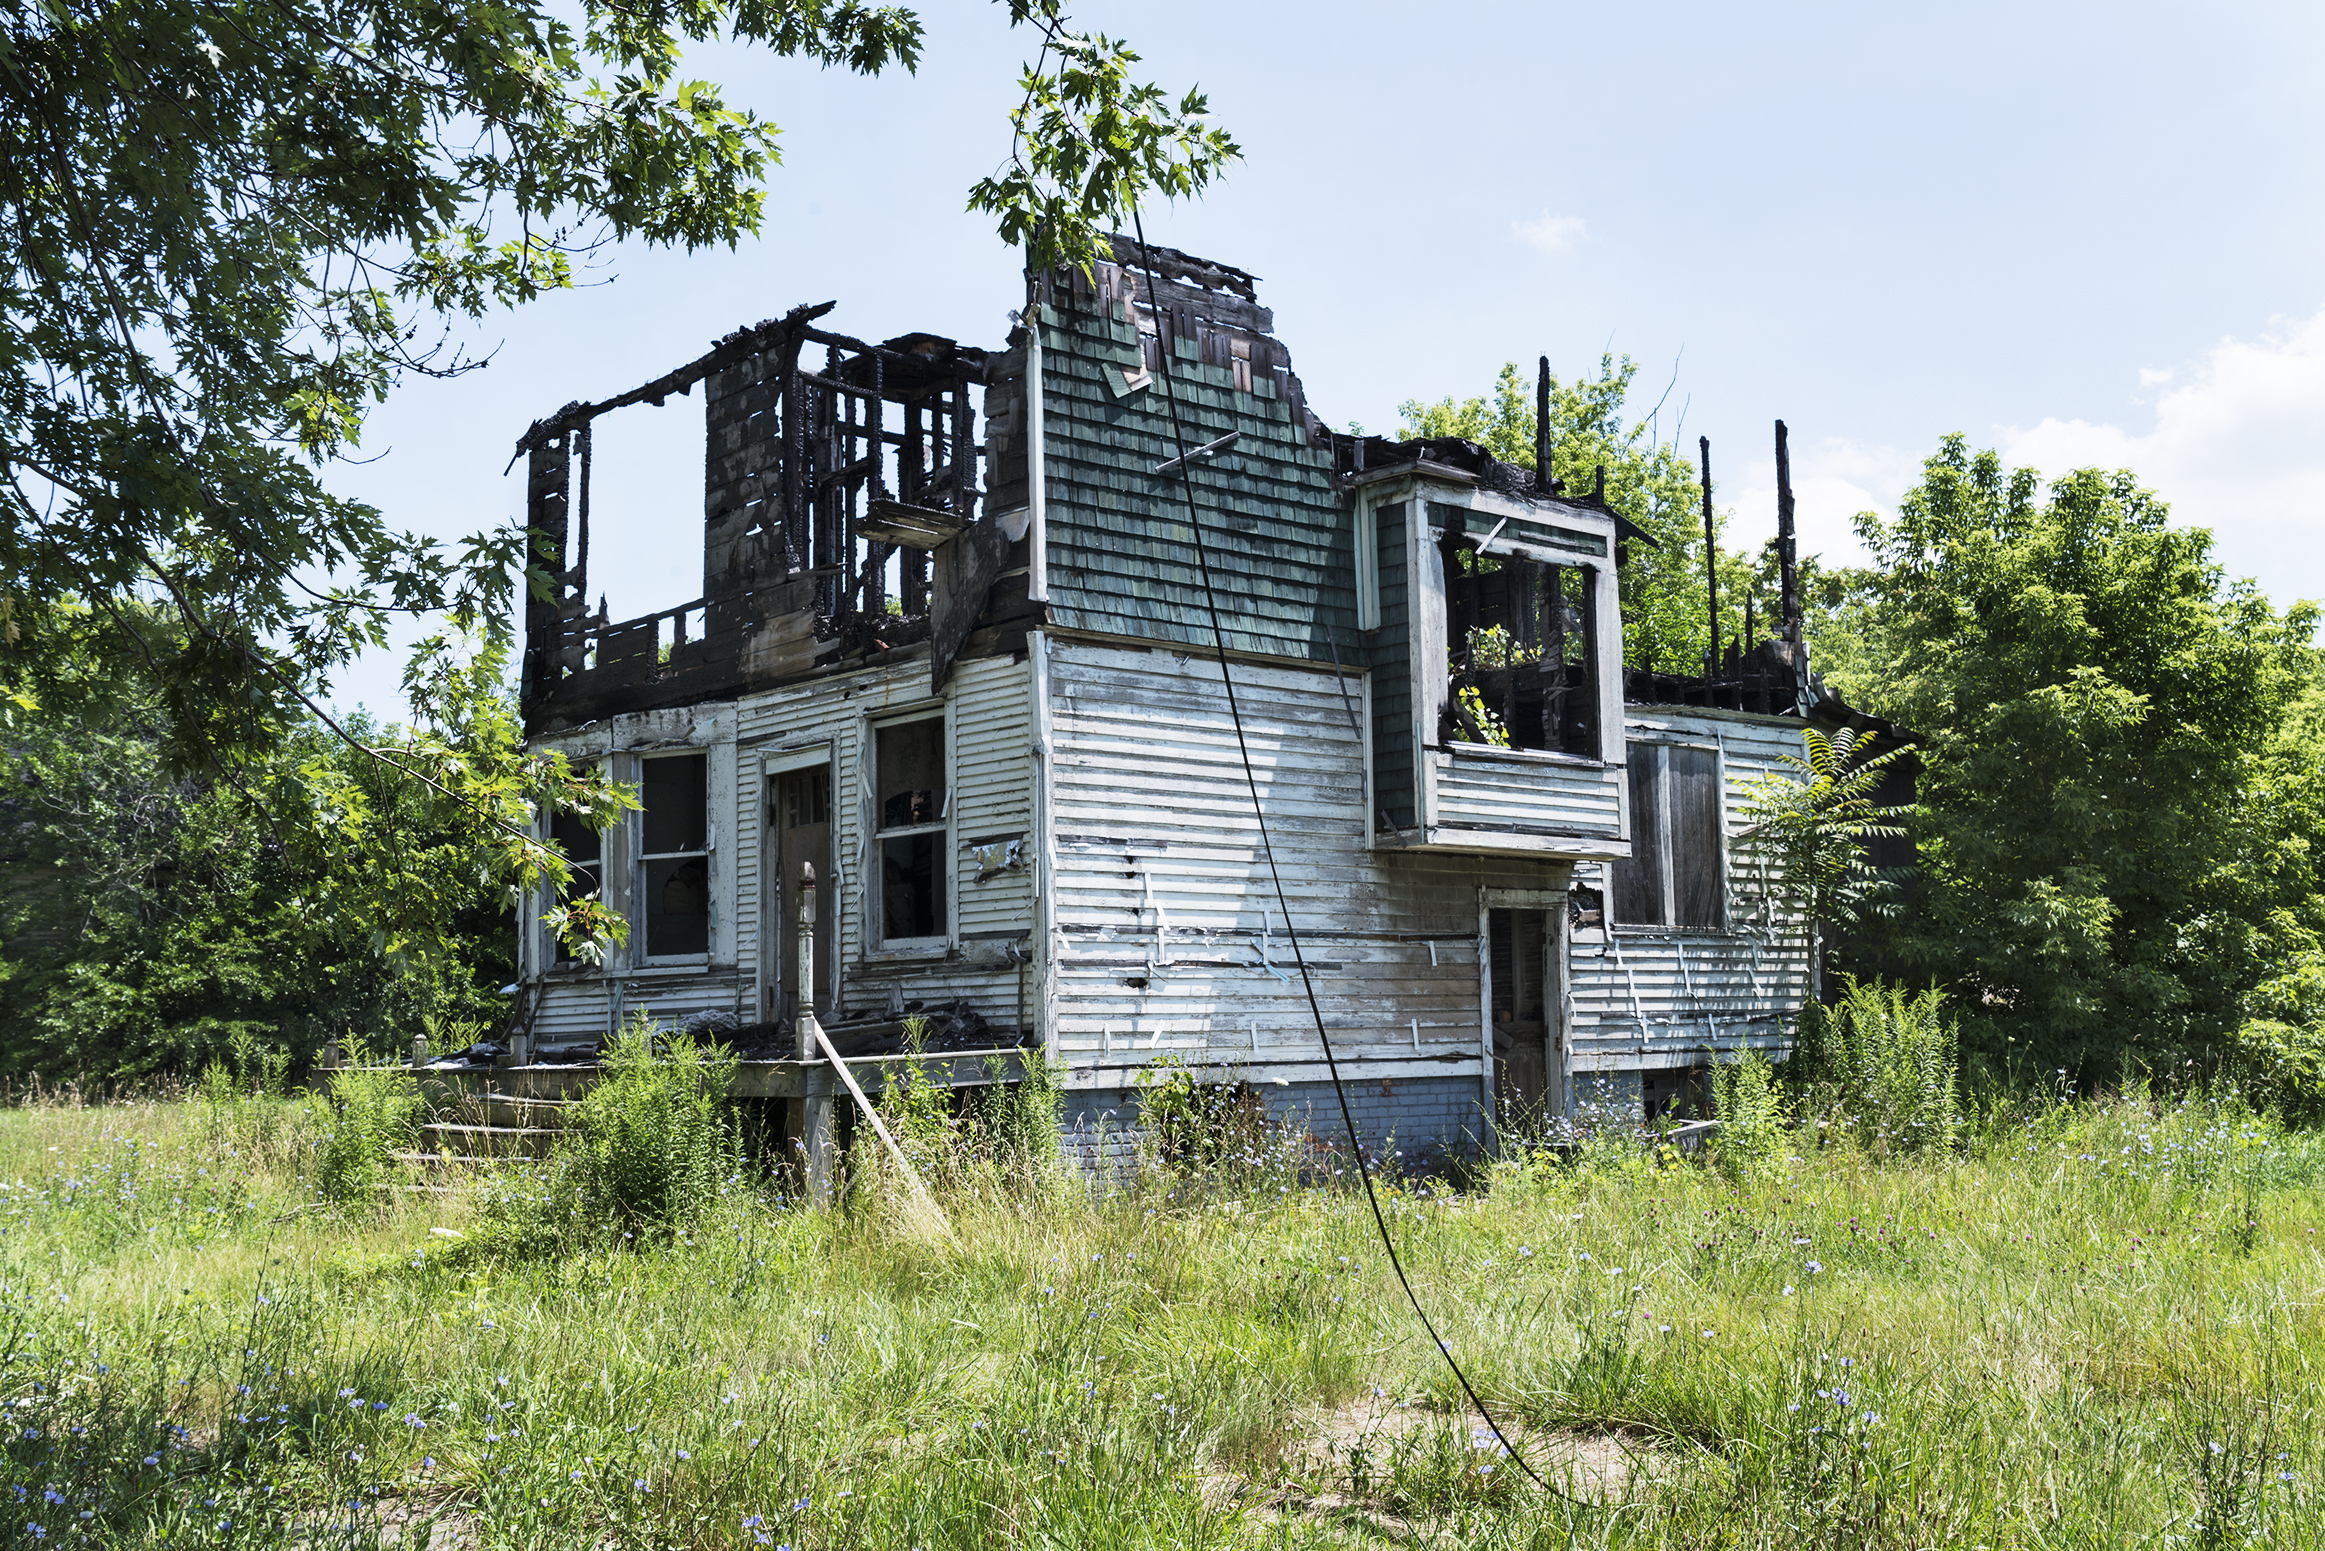 Burned House, Detroit 2018